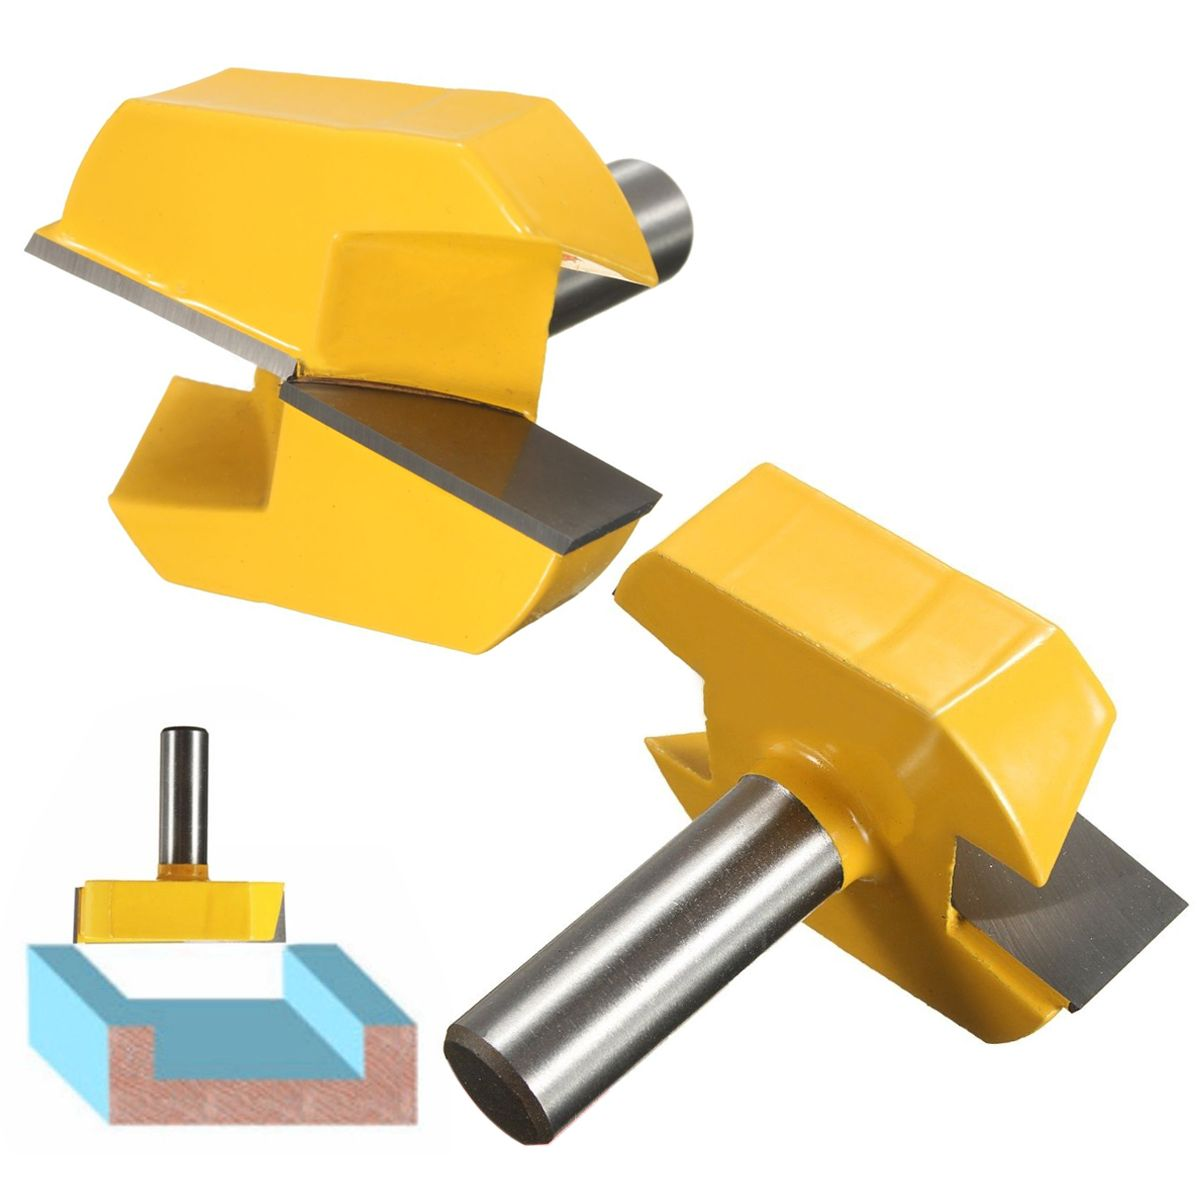 1pc Durable Mayitr CNC Carbide Alloy Woodworking Milling Cutter Straight End 1/2 Shank 2-1/4 Dia Bottom Cleaning Router Bit